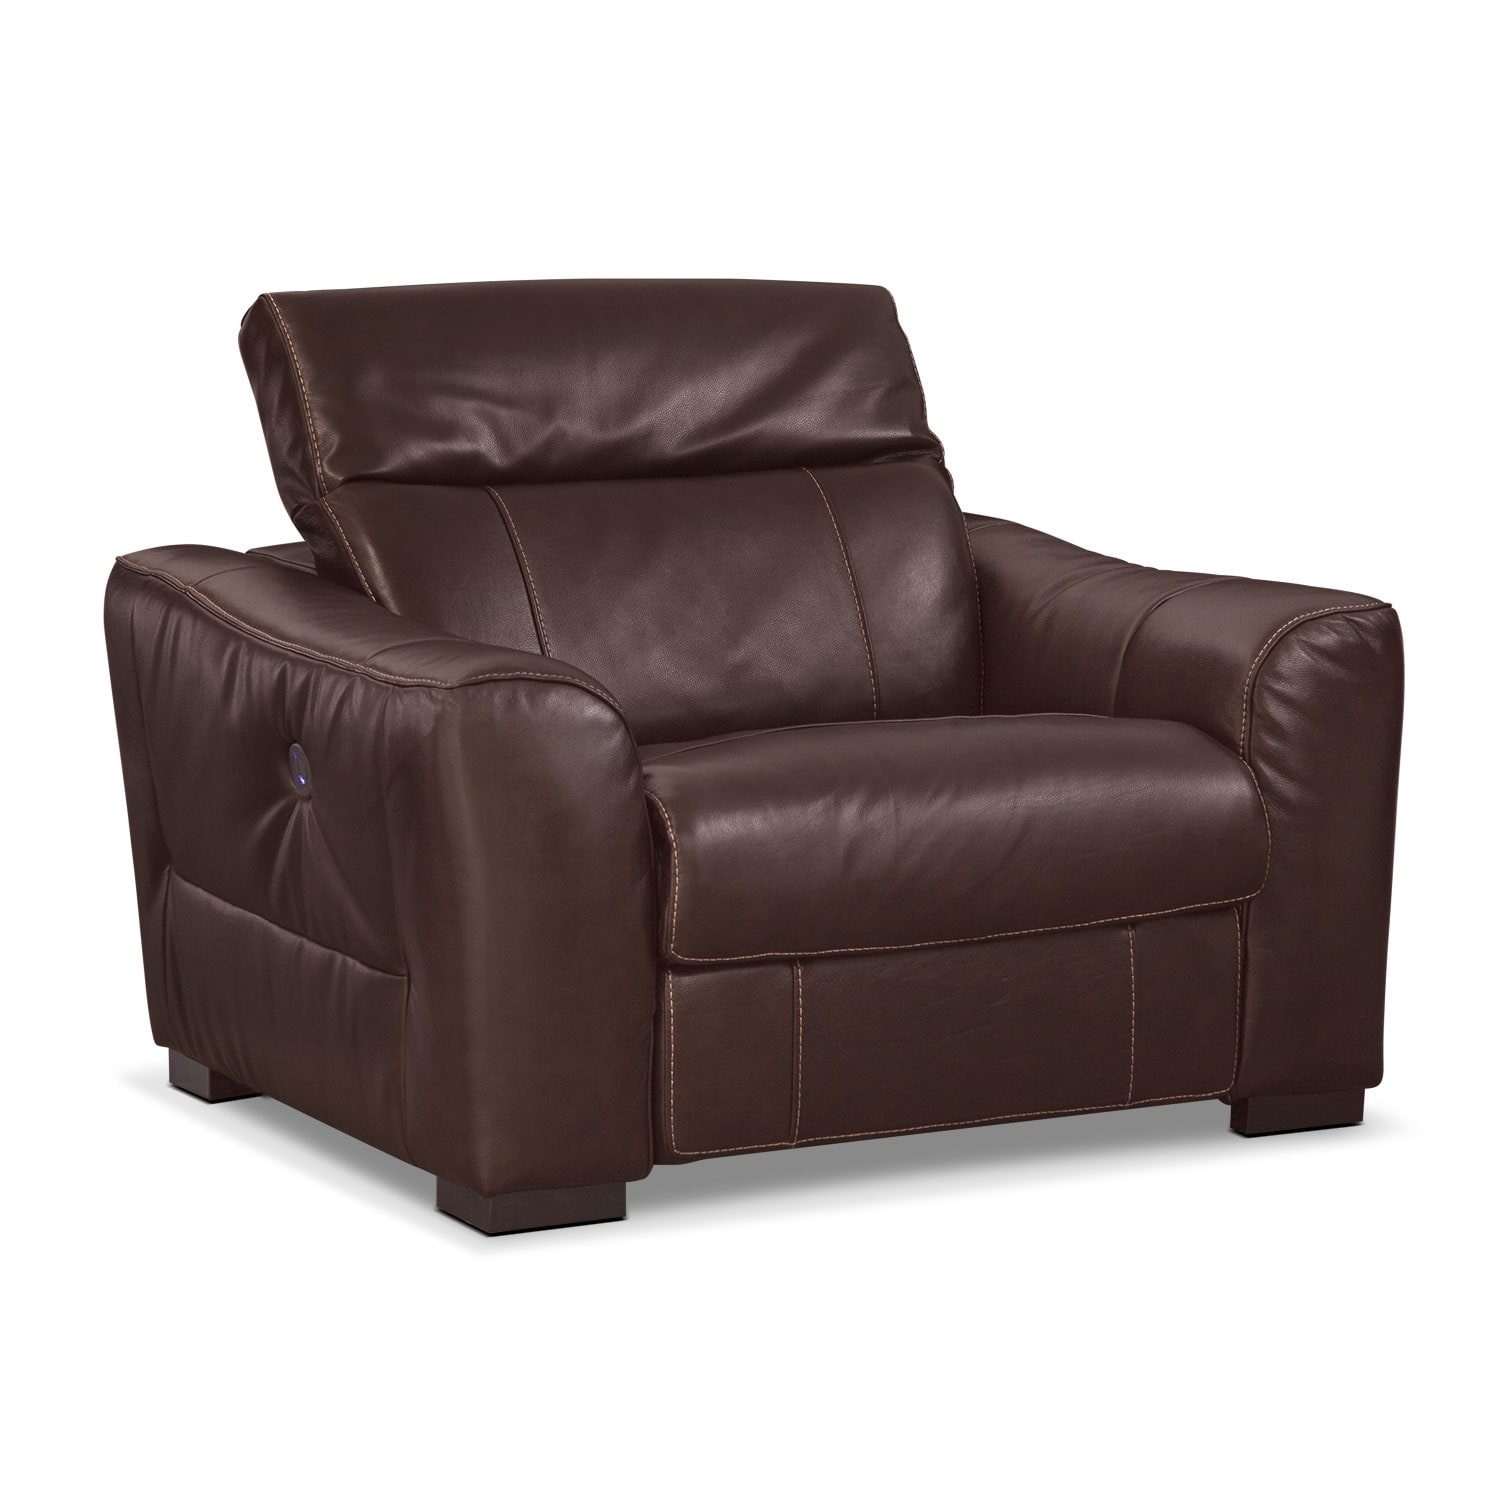 Living Room Furniture - Palisade Power Recliner - Brown